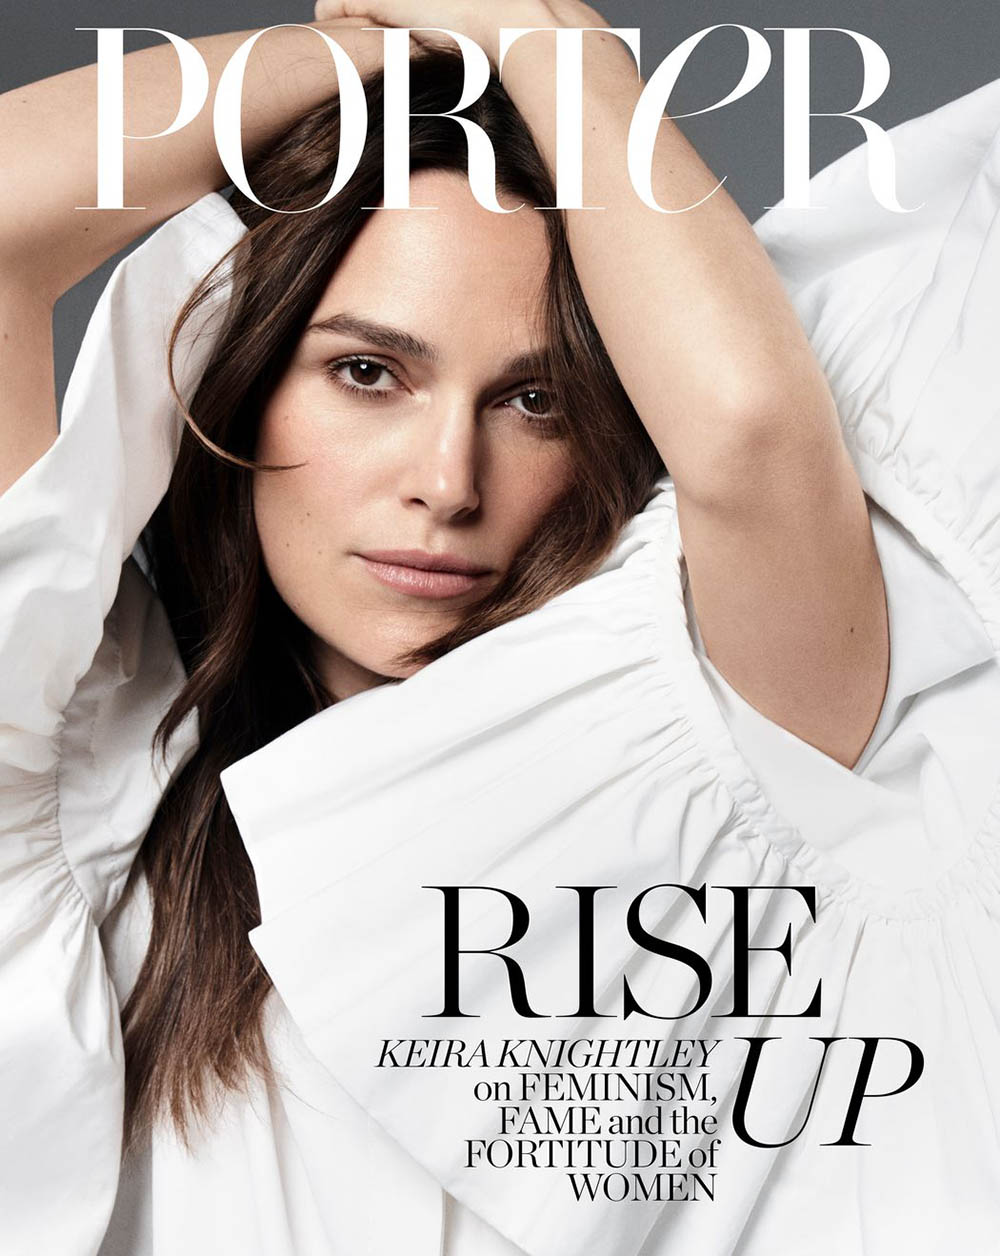 Keira Knightley covers Porter Magazine March 9th, 2020 by Vanina Sorrenti